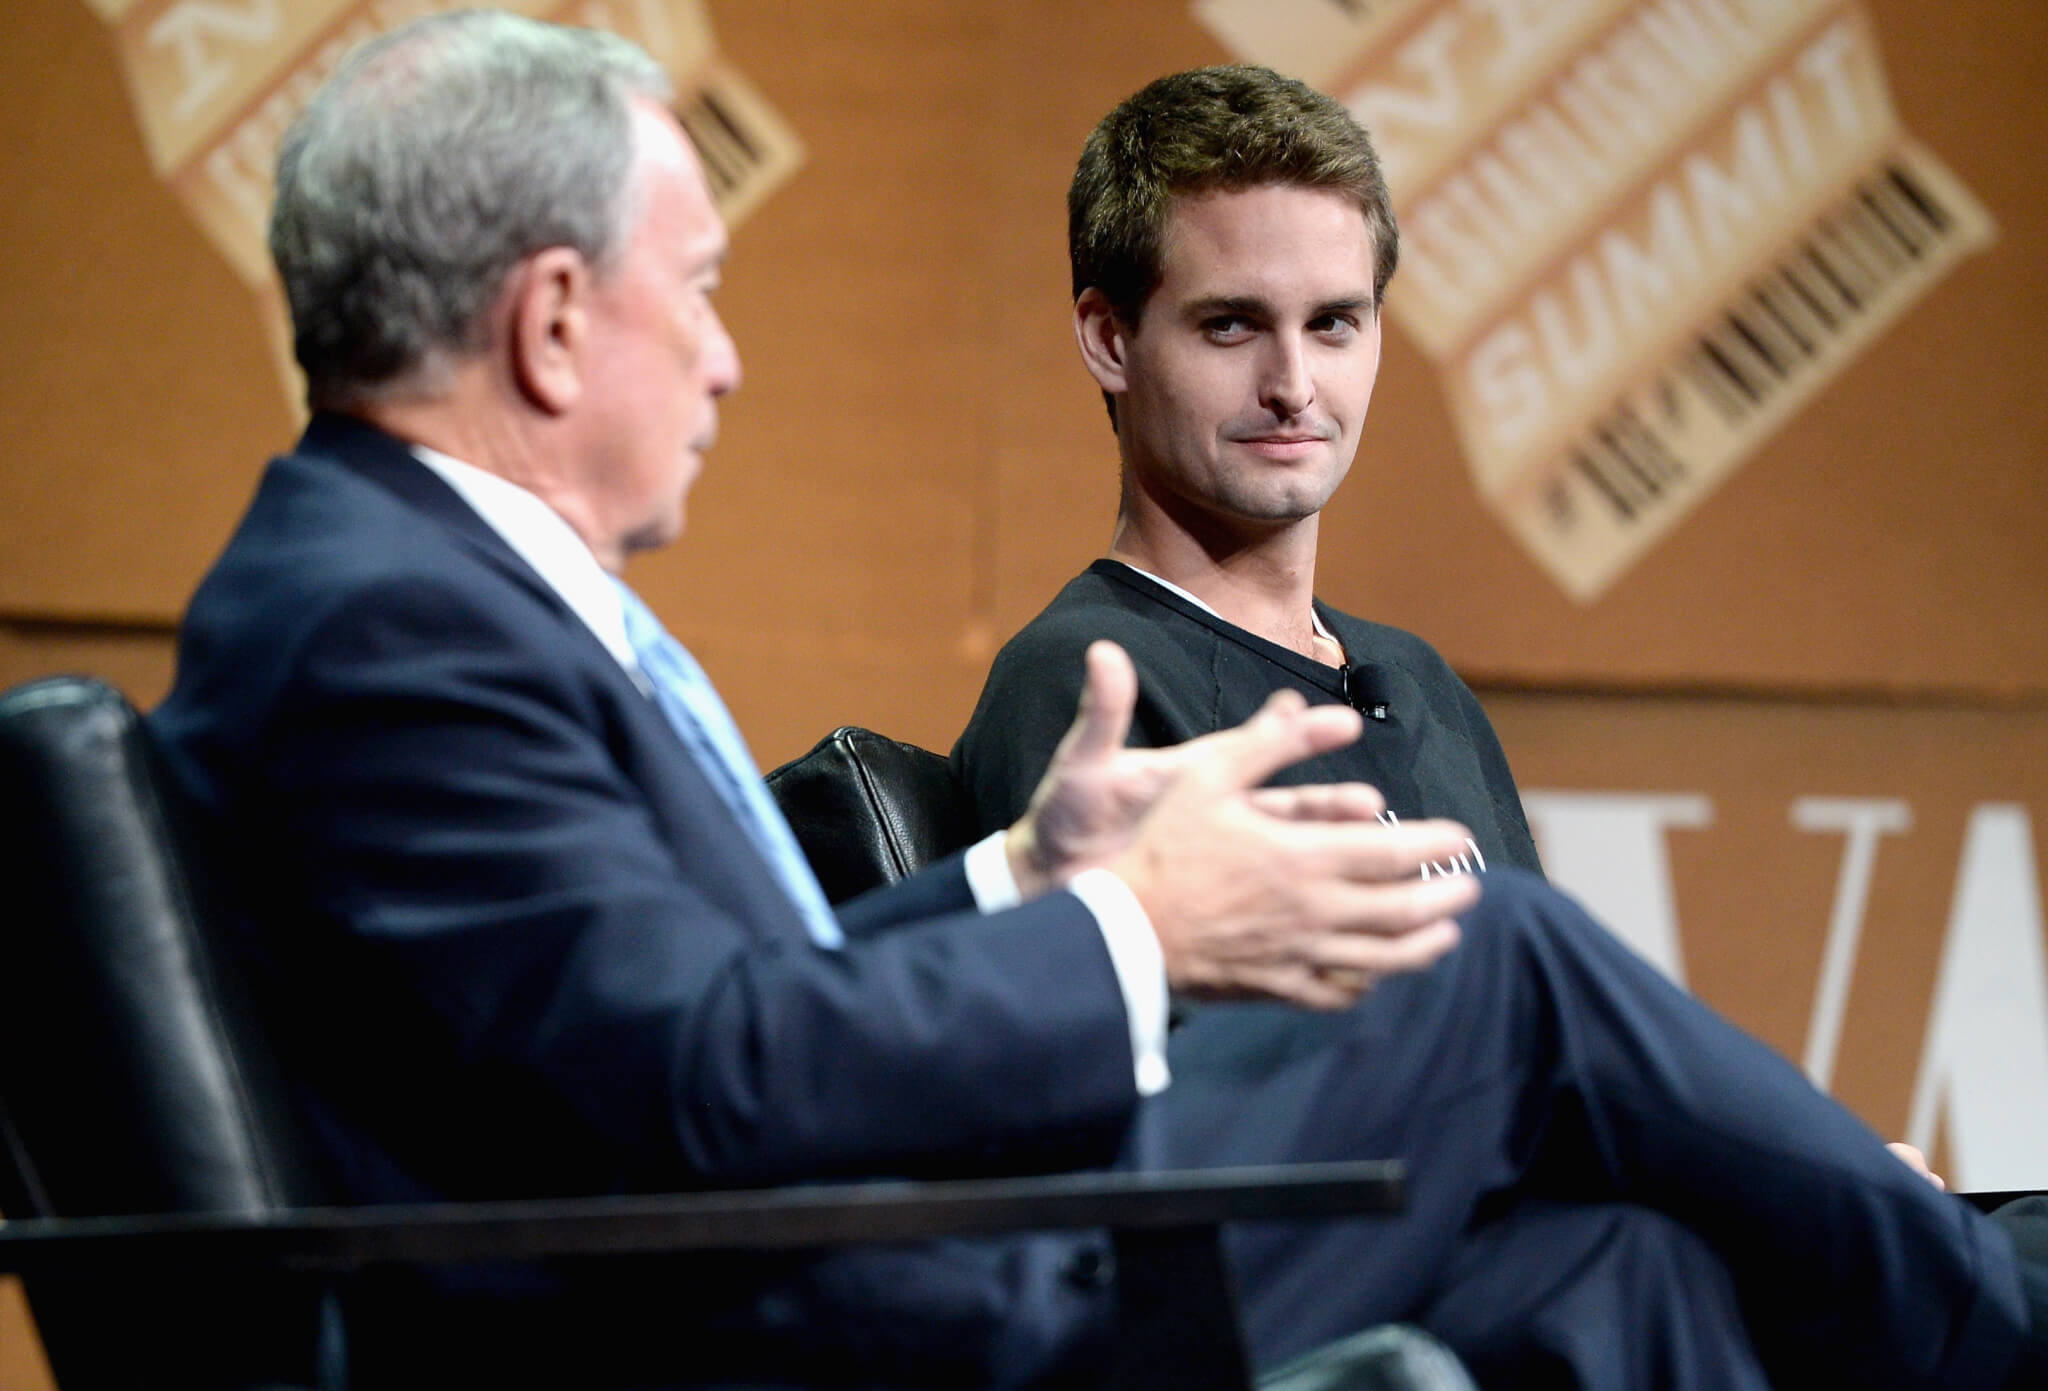 """SAN FRANCISCO, CA - OCTOBER 08: Bloomberg LP Founder Michael Bloomberg and Snapchat CEO Evan Spiegel speak onstage during """"Disrupting Information and Communication"""" at the Vanity Fair New Establishment Summit at Yerba Buena Center for the Arts on October 8, 2014 in San Francisco, California."""